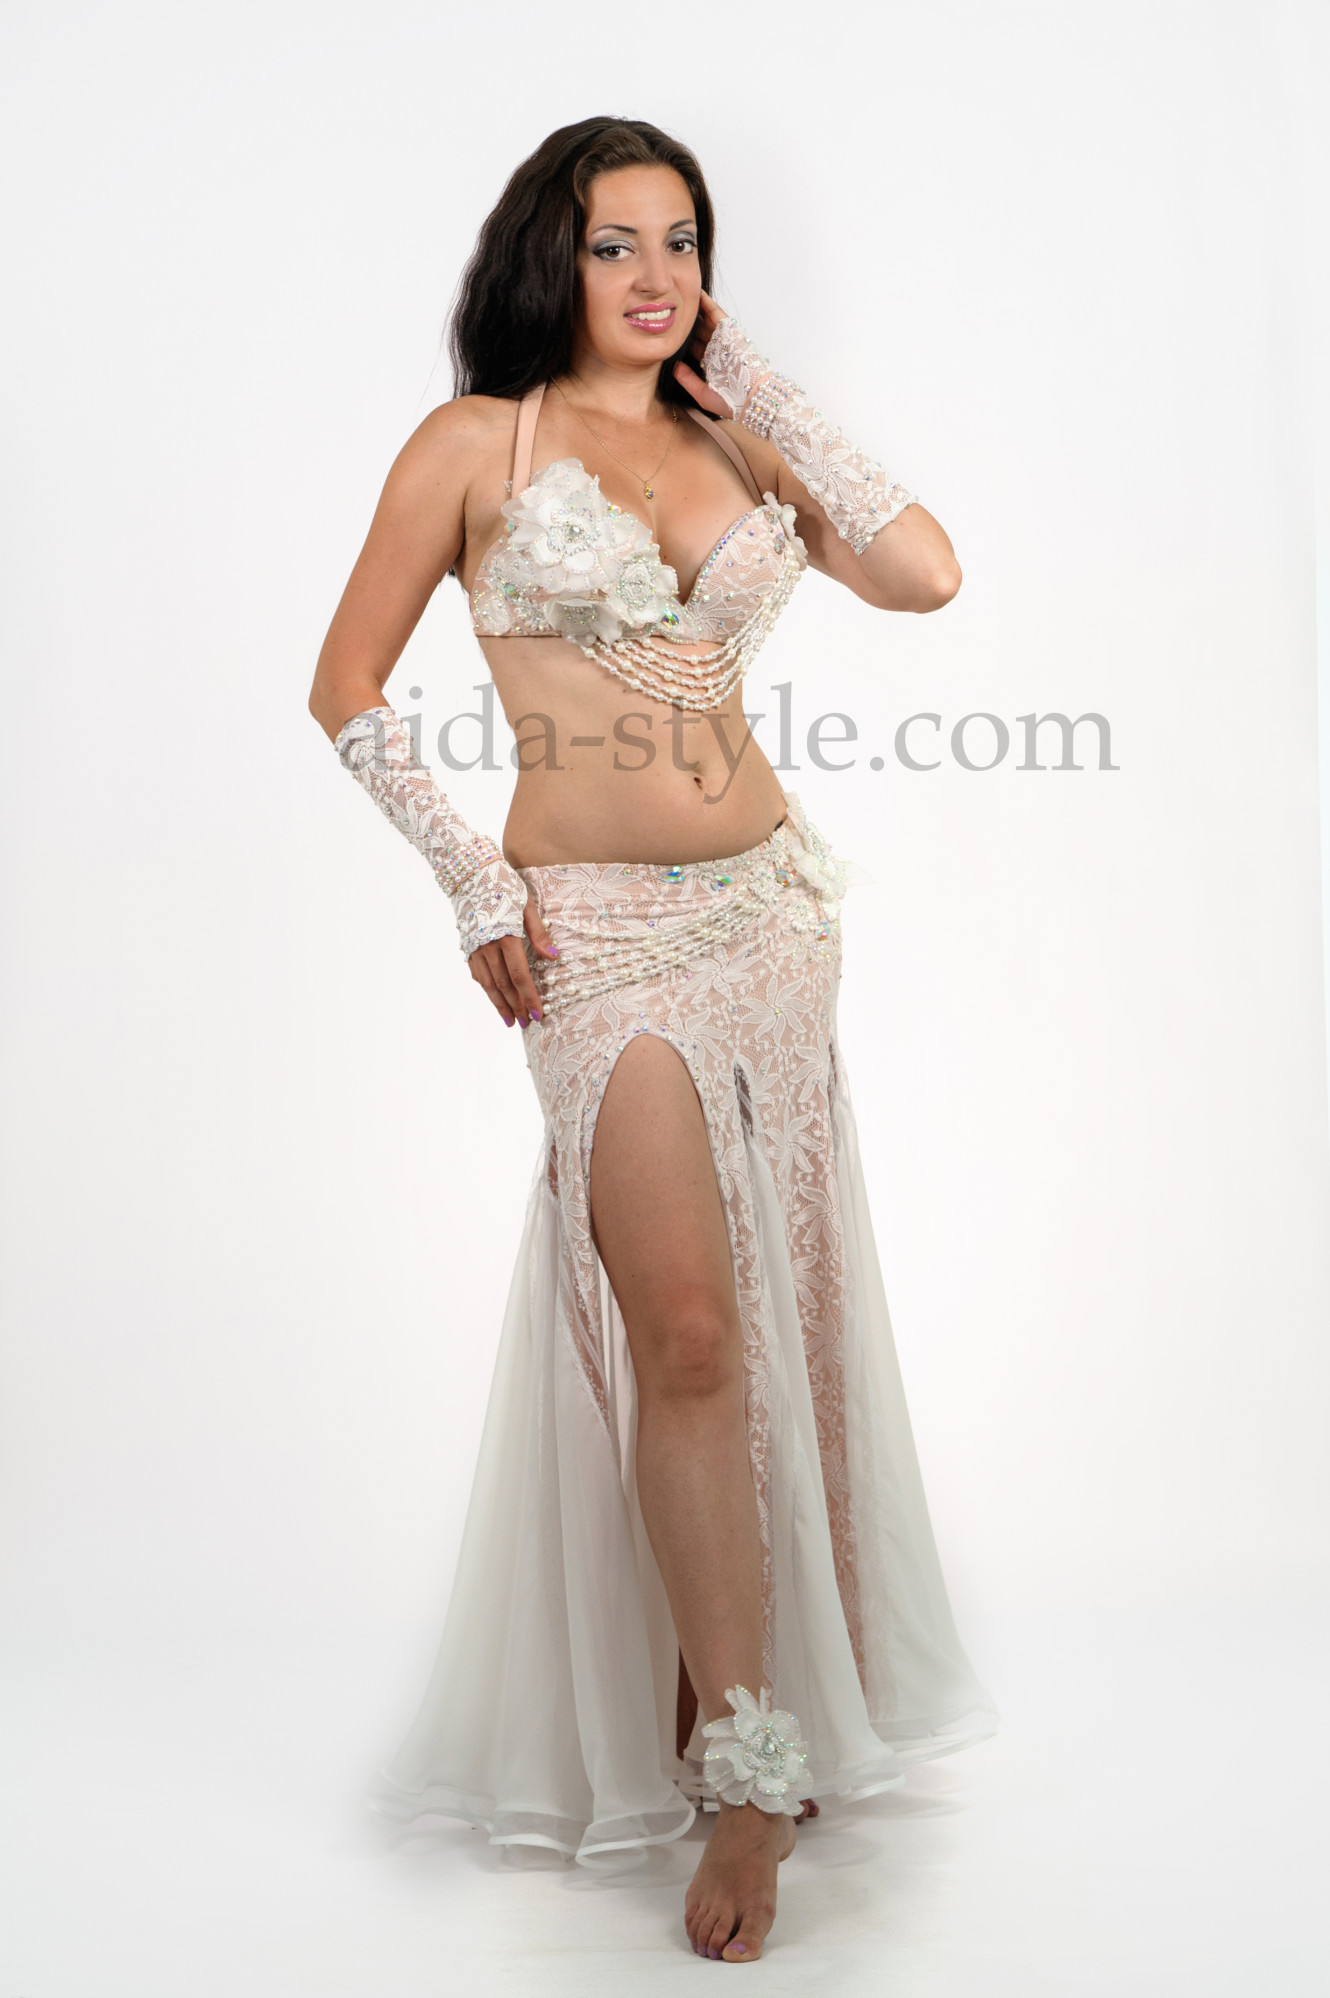 Professional belly dance dress. Skirt is from stretchable material. Bra is decorated with white artificial flowers